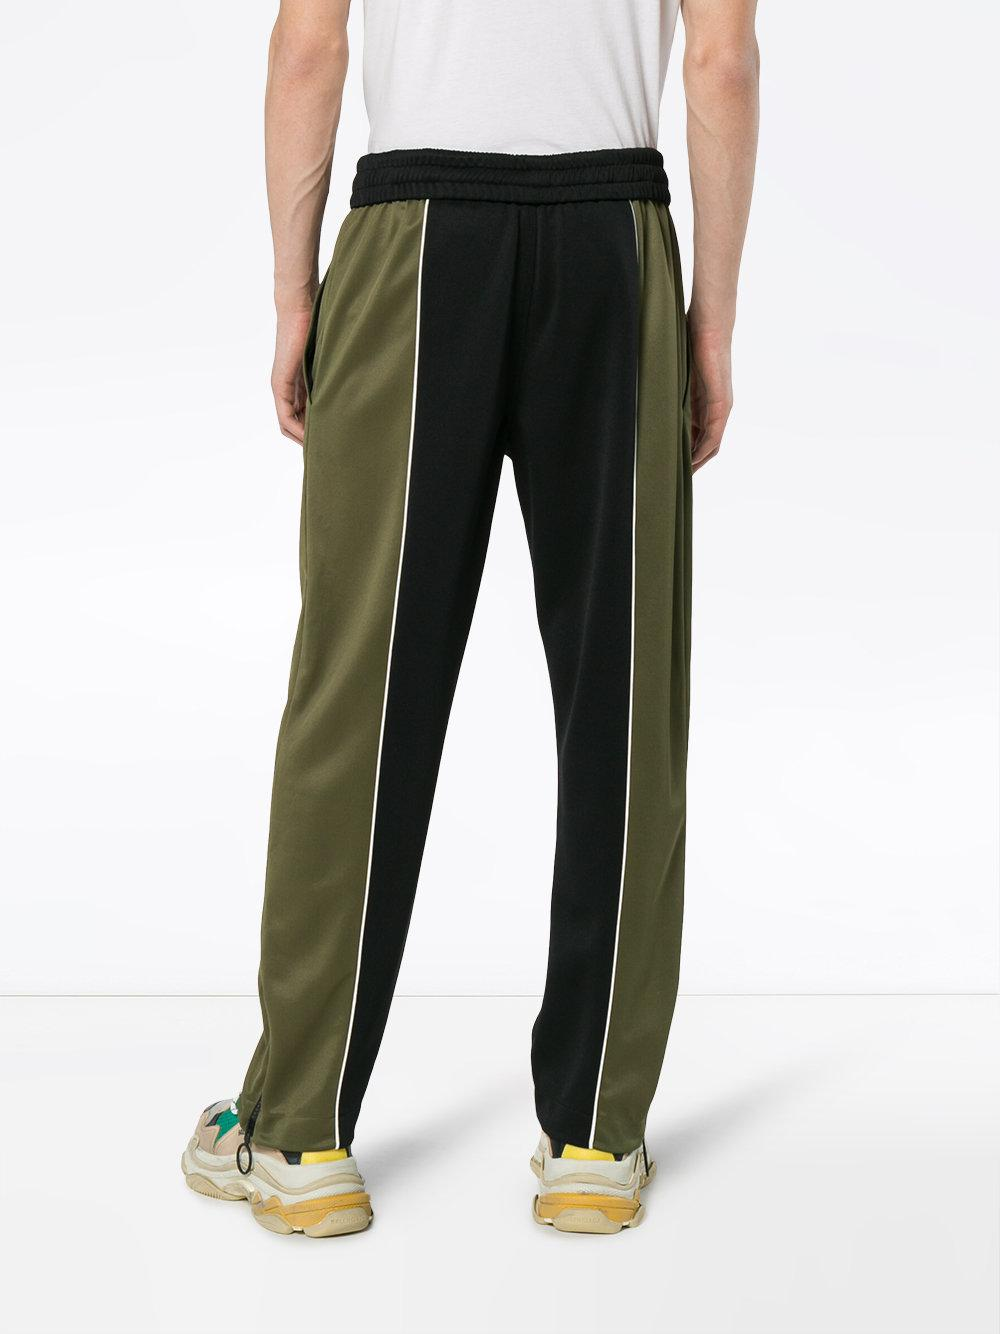 Off-White c/o Virgil Abloh X Browns Green And Black Track Pants for Men